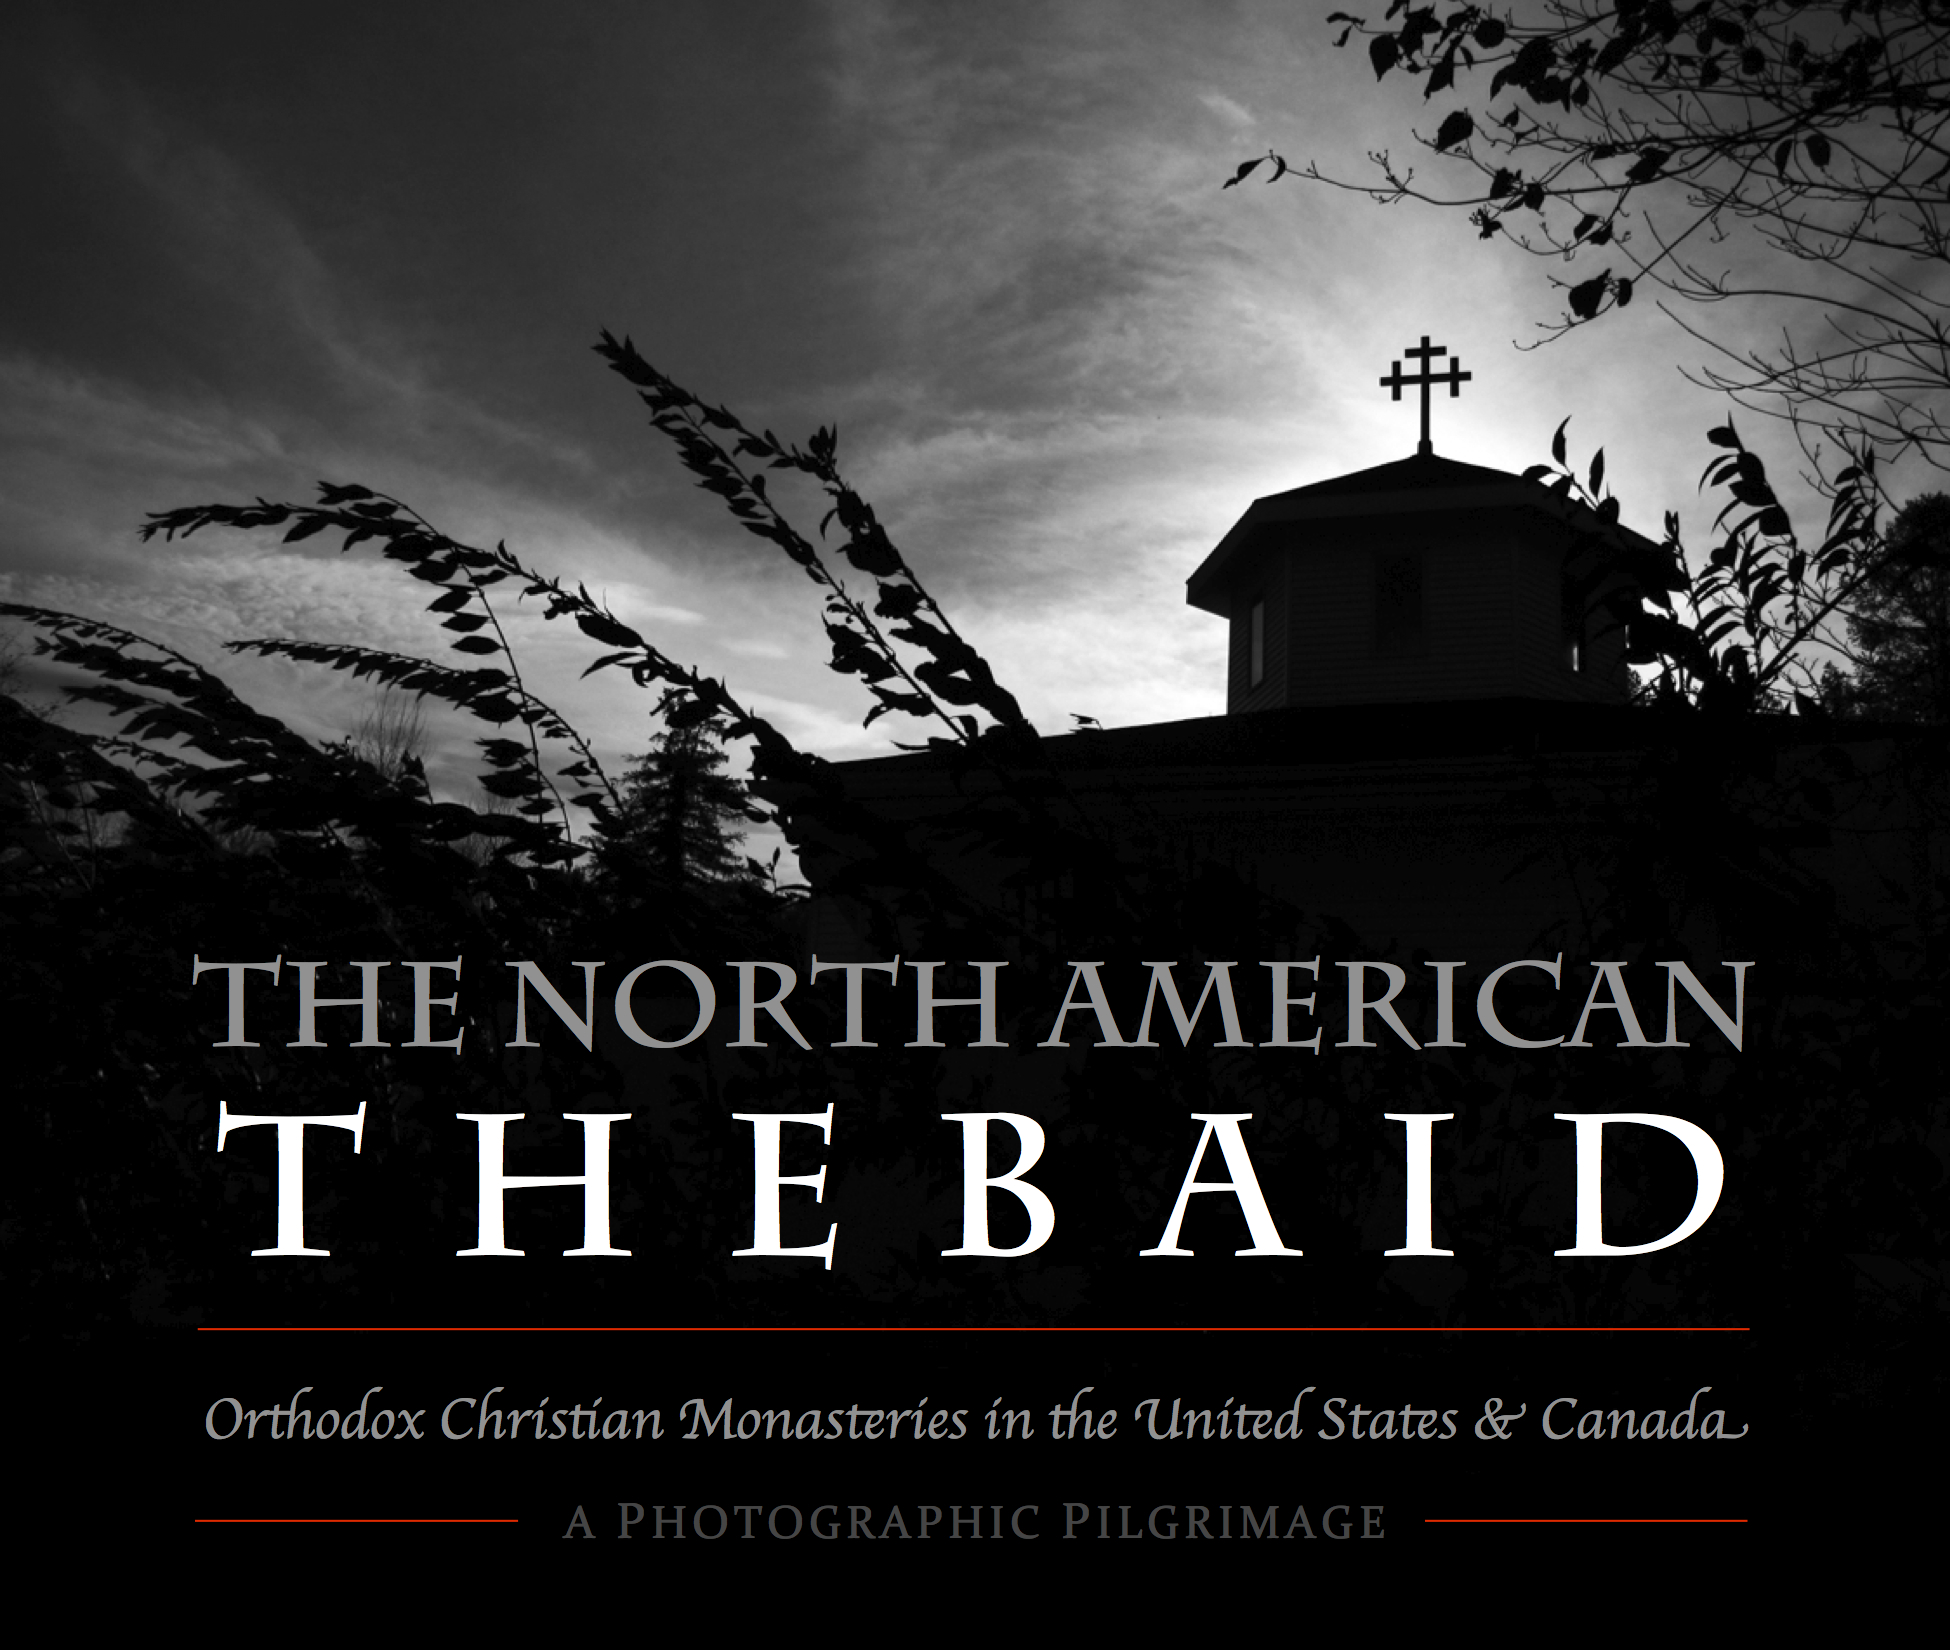 Monastic writings the north american thebaid proposed book cover design fandeluxe Choice Image